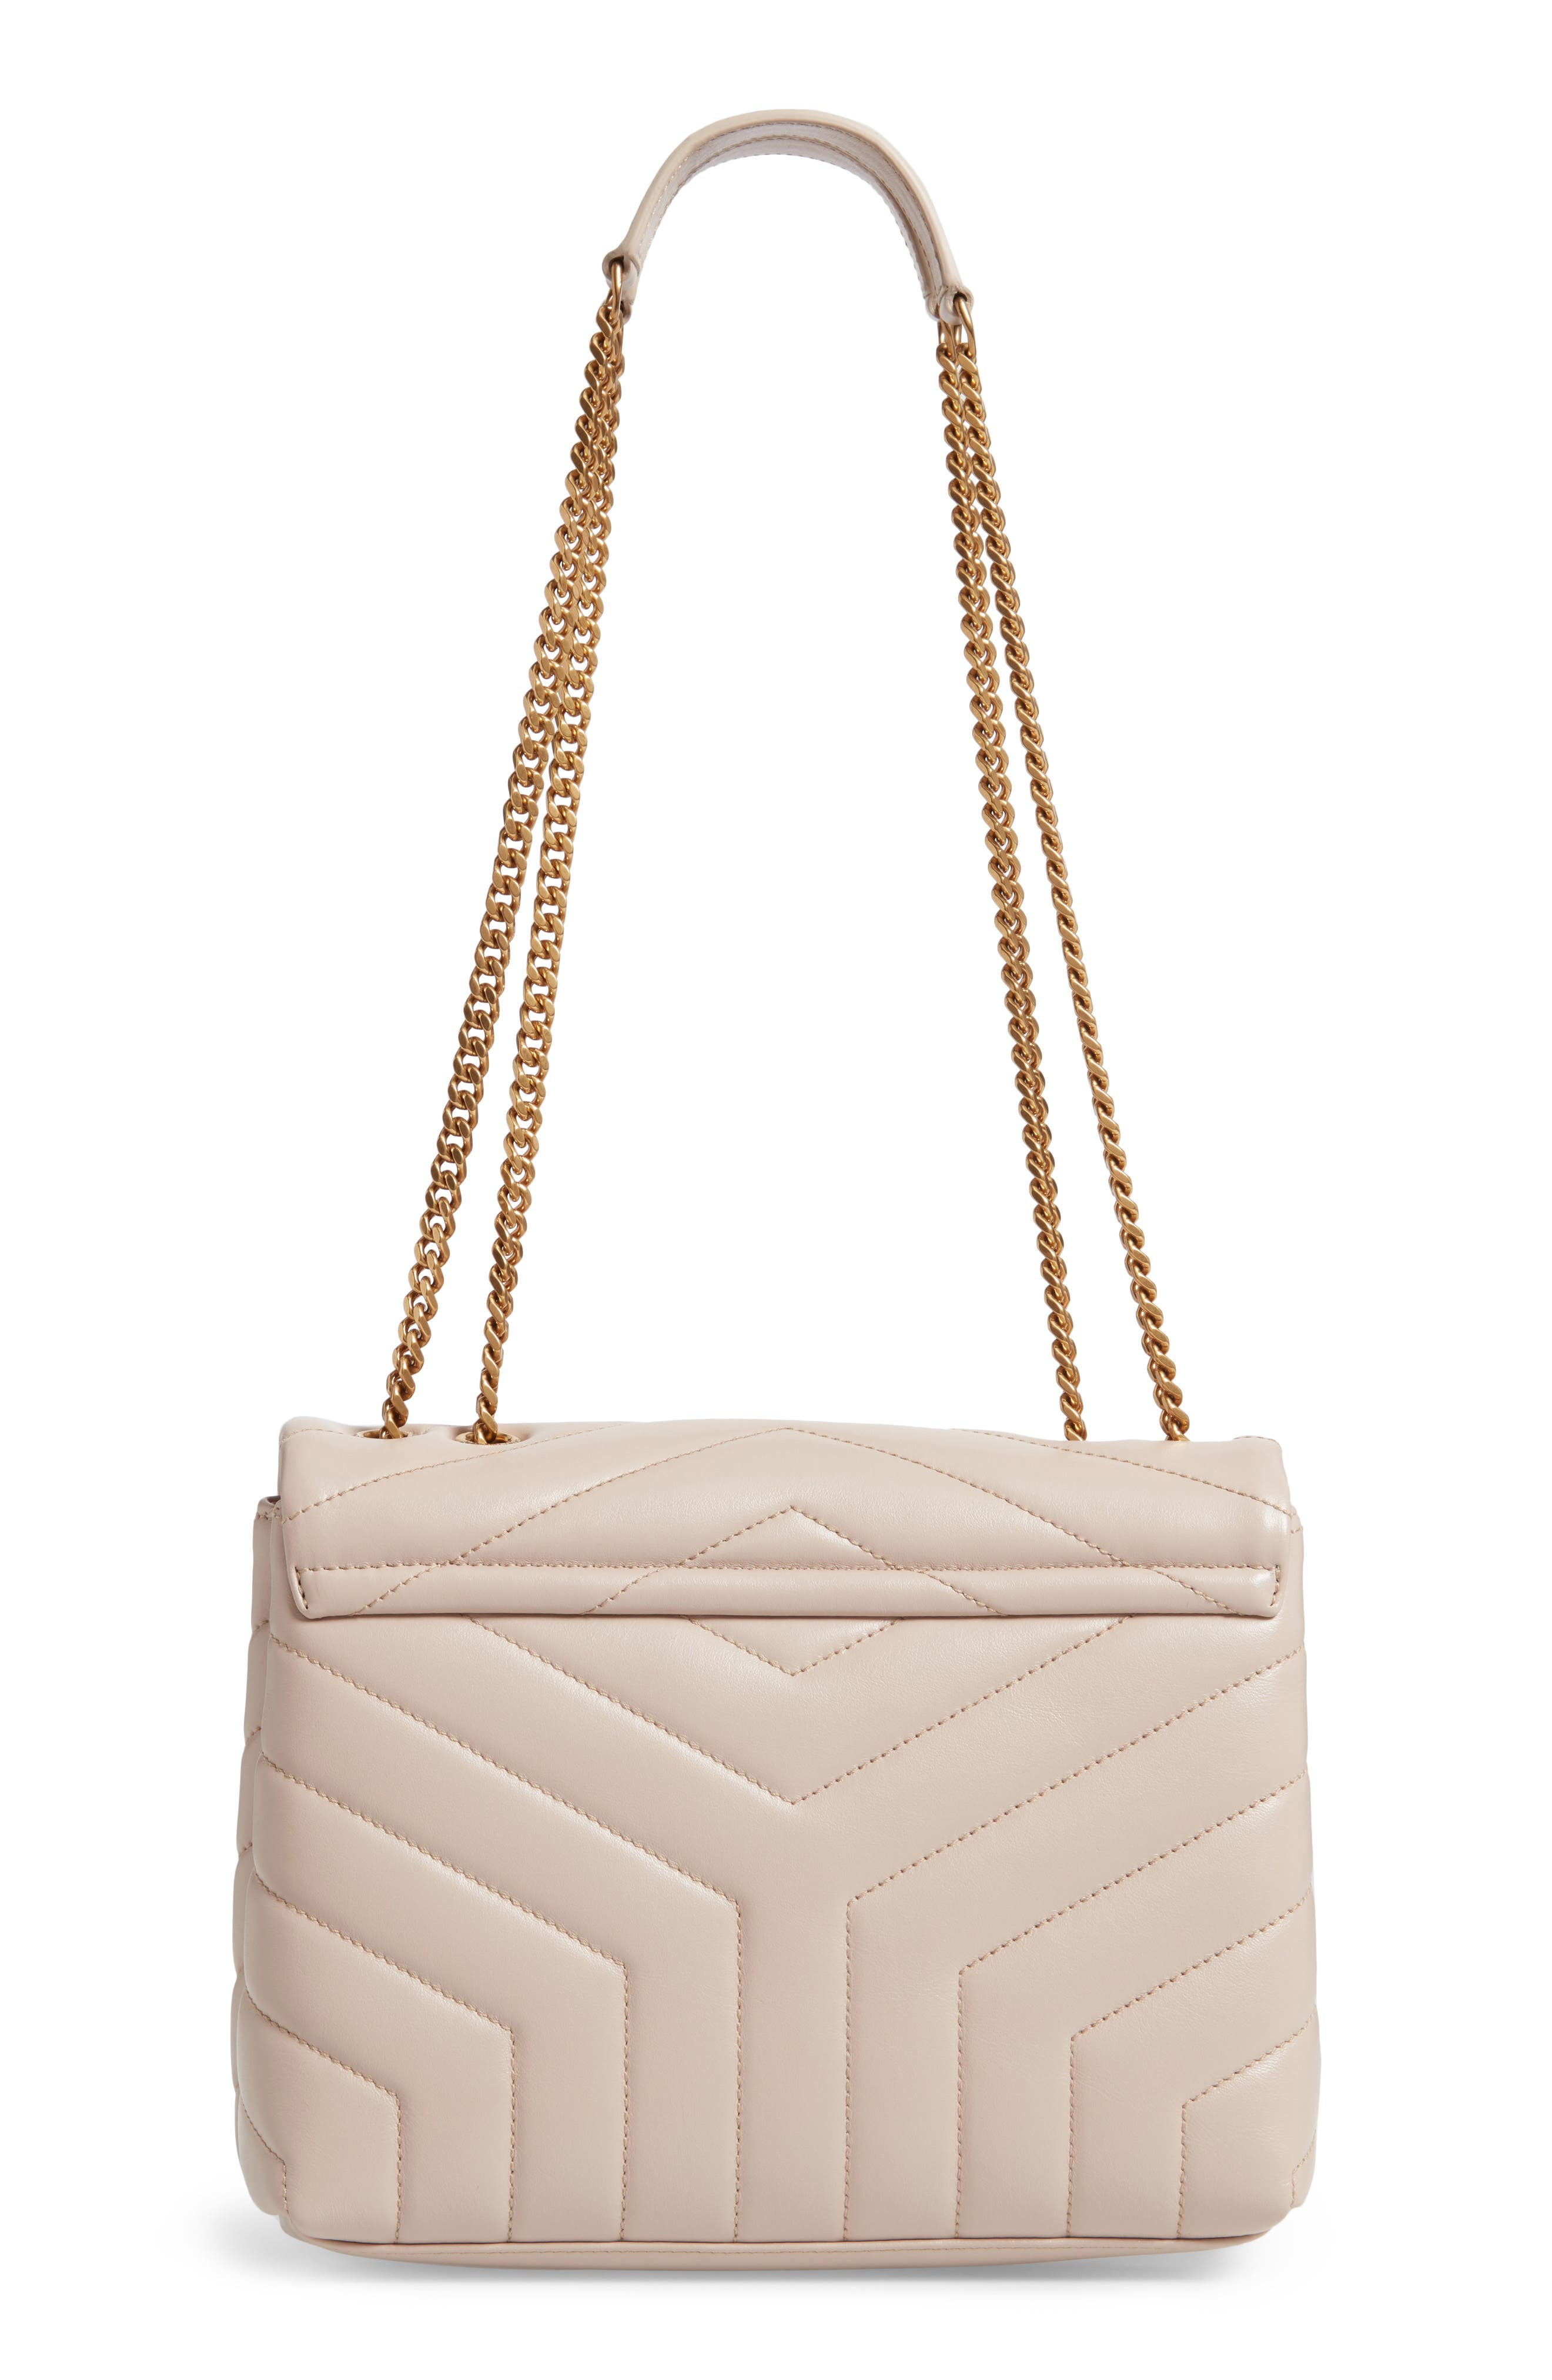 SAINT LAURENT,                             Small Loulou Leather Shoulder Bag,                             Alternate thumbnail 3, color,                             LIGHT NATURAL